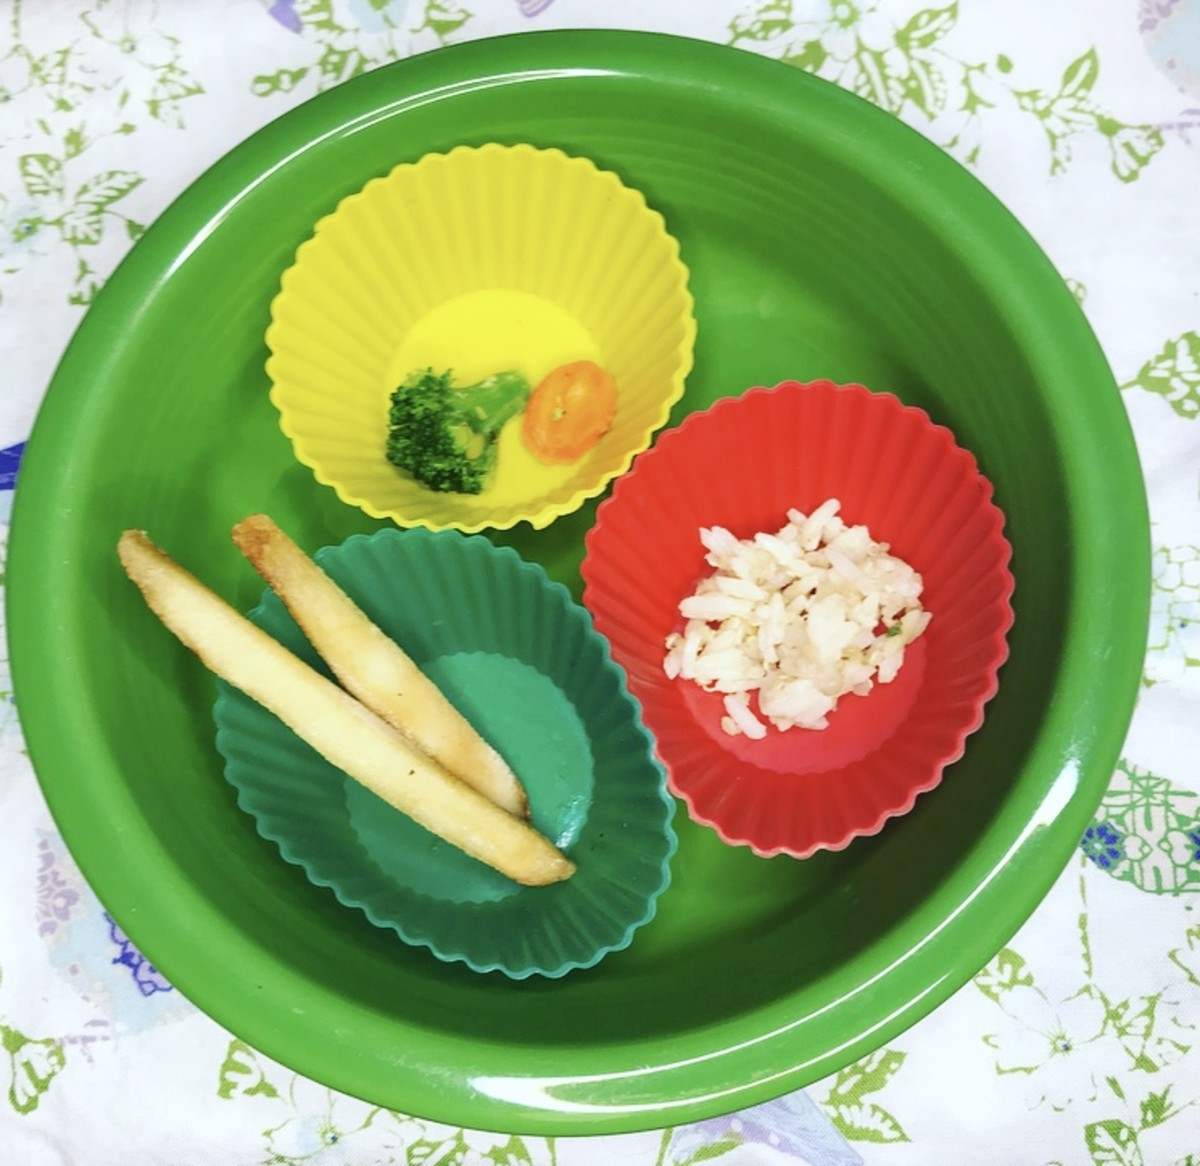 Three Foods Method for getting a toddler to try new foods